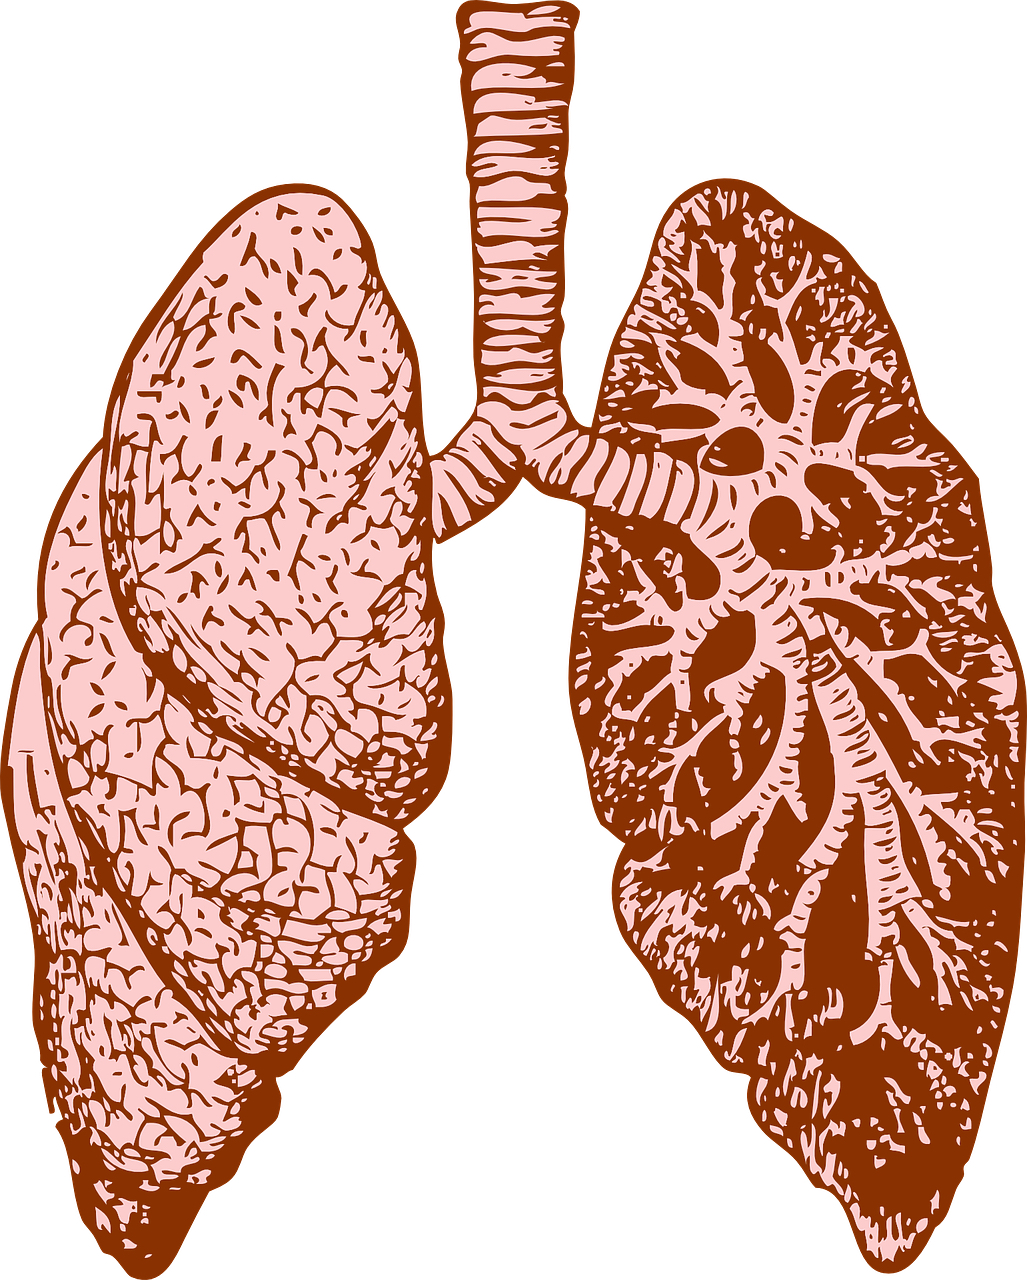 lungs and breath